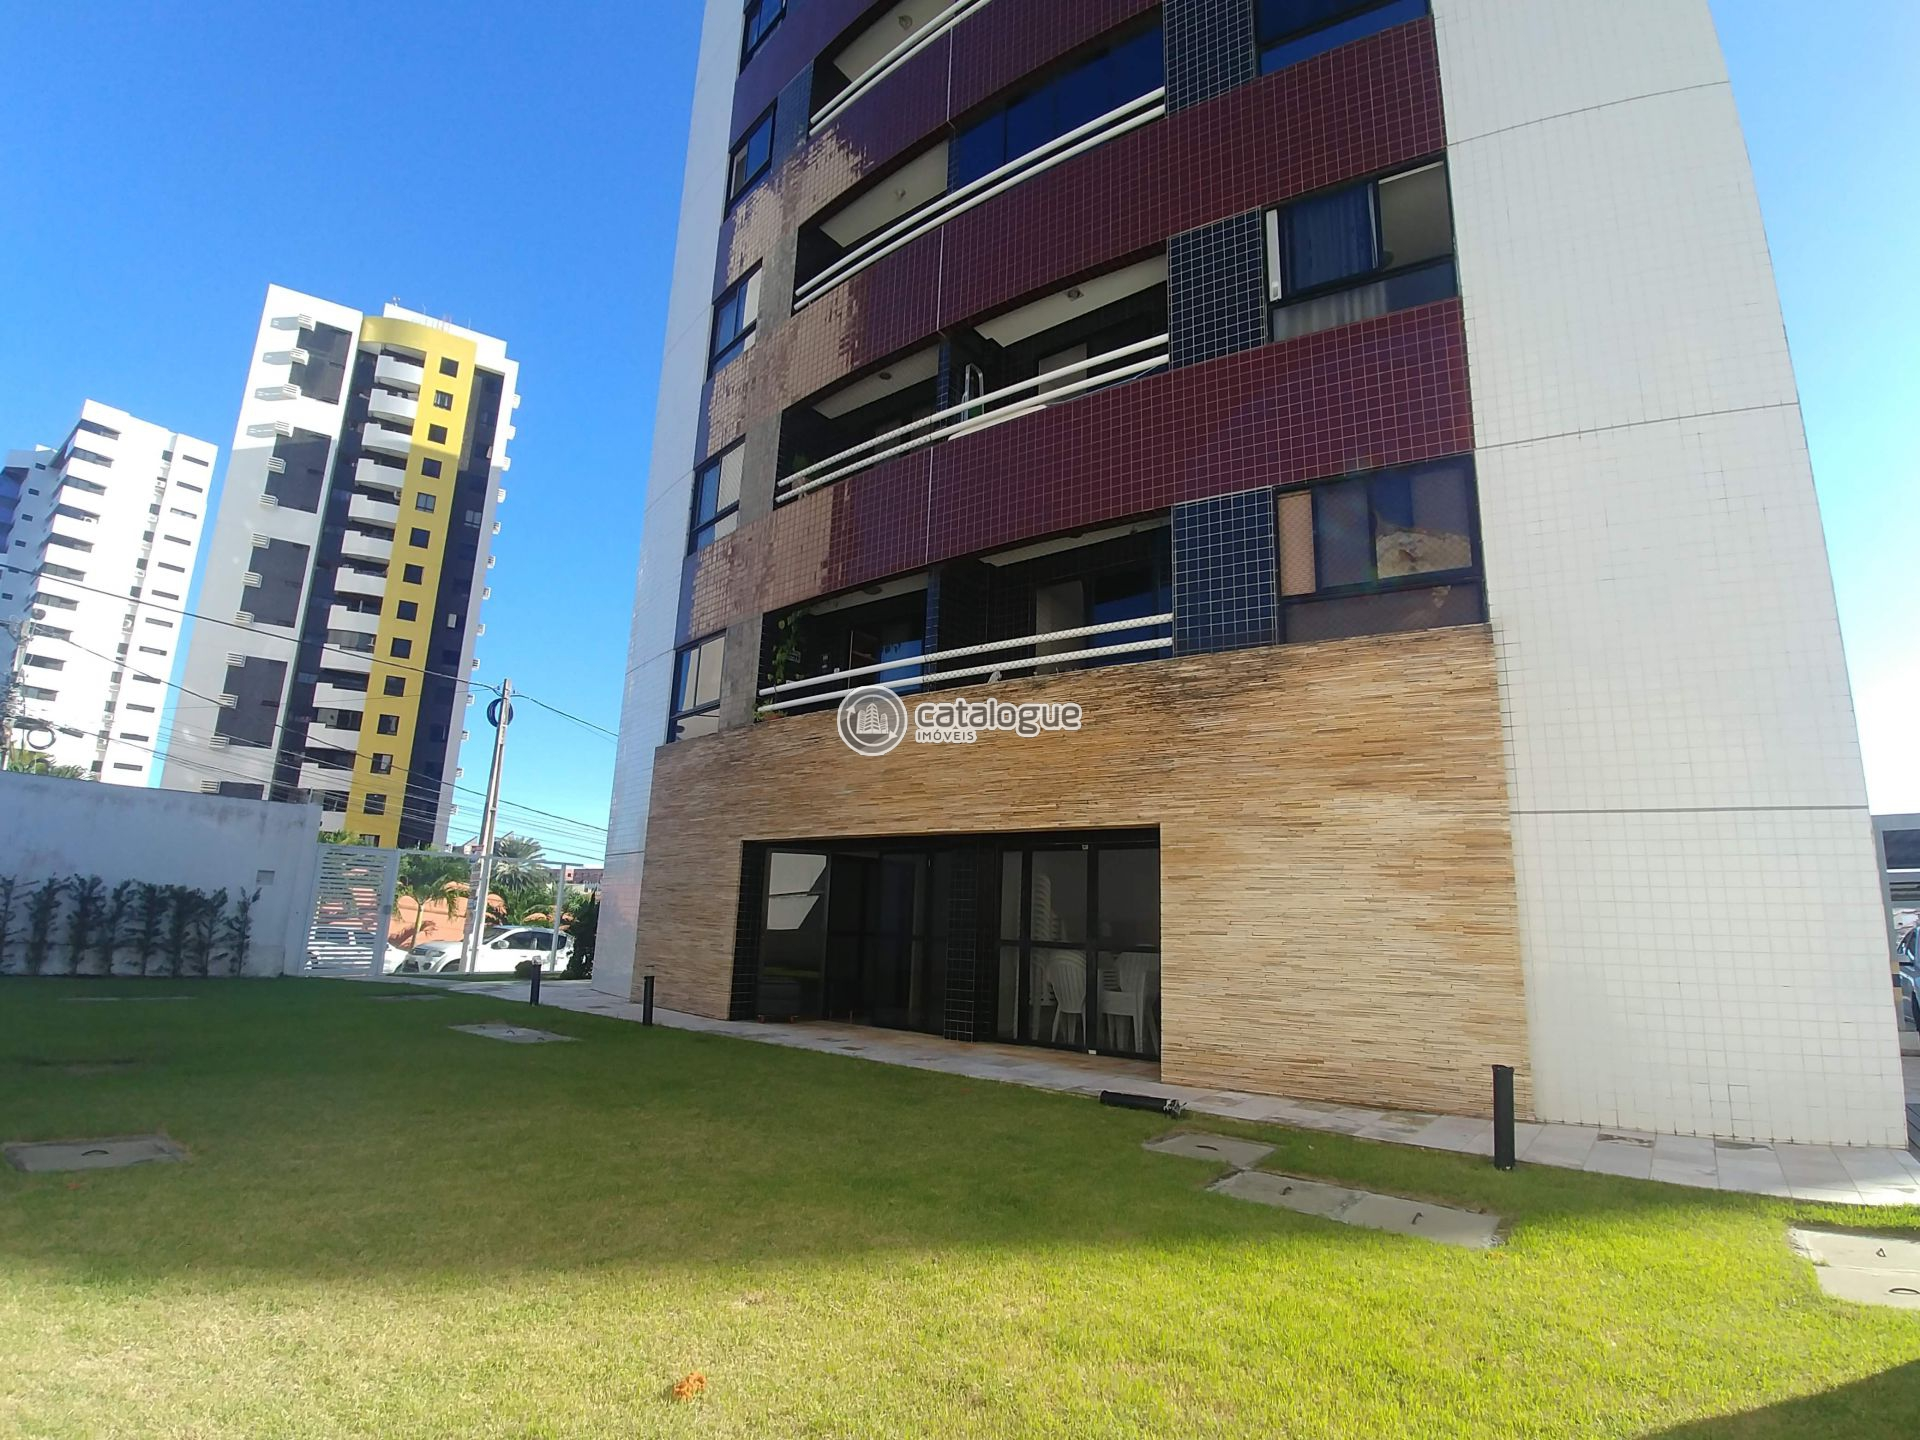 FOTO 21 - Residencial Lincoln - 0661 - 9